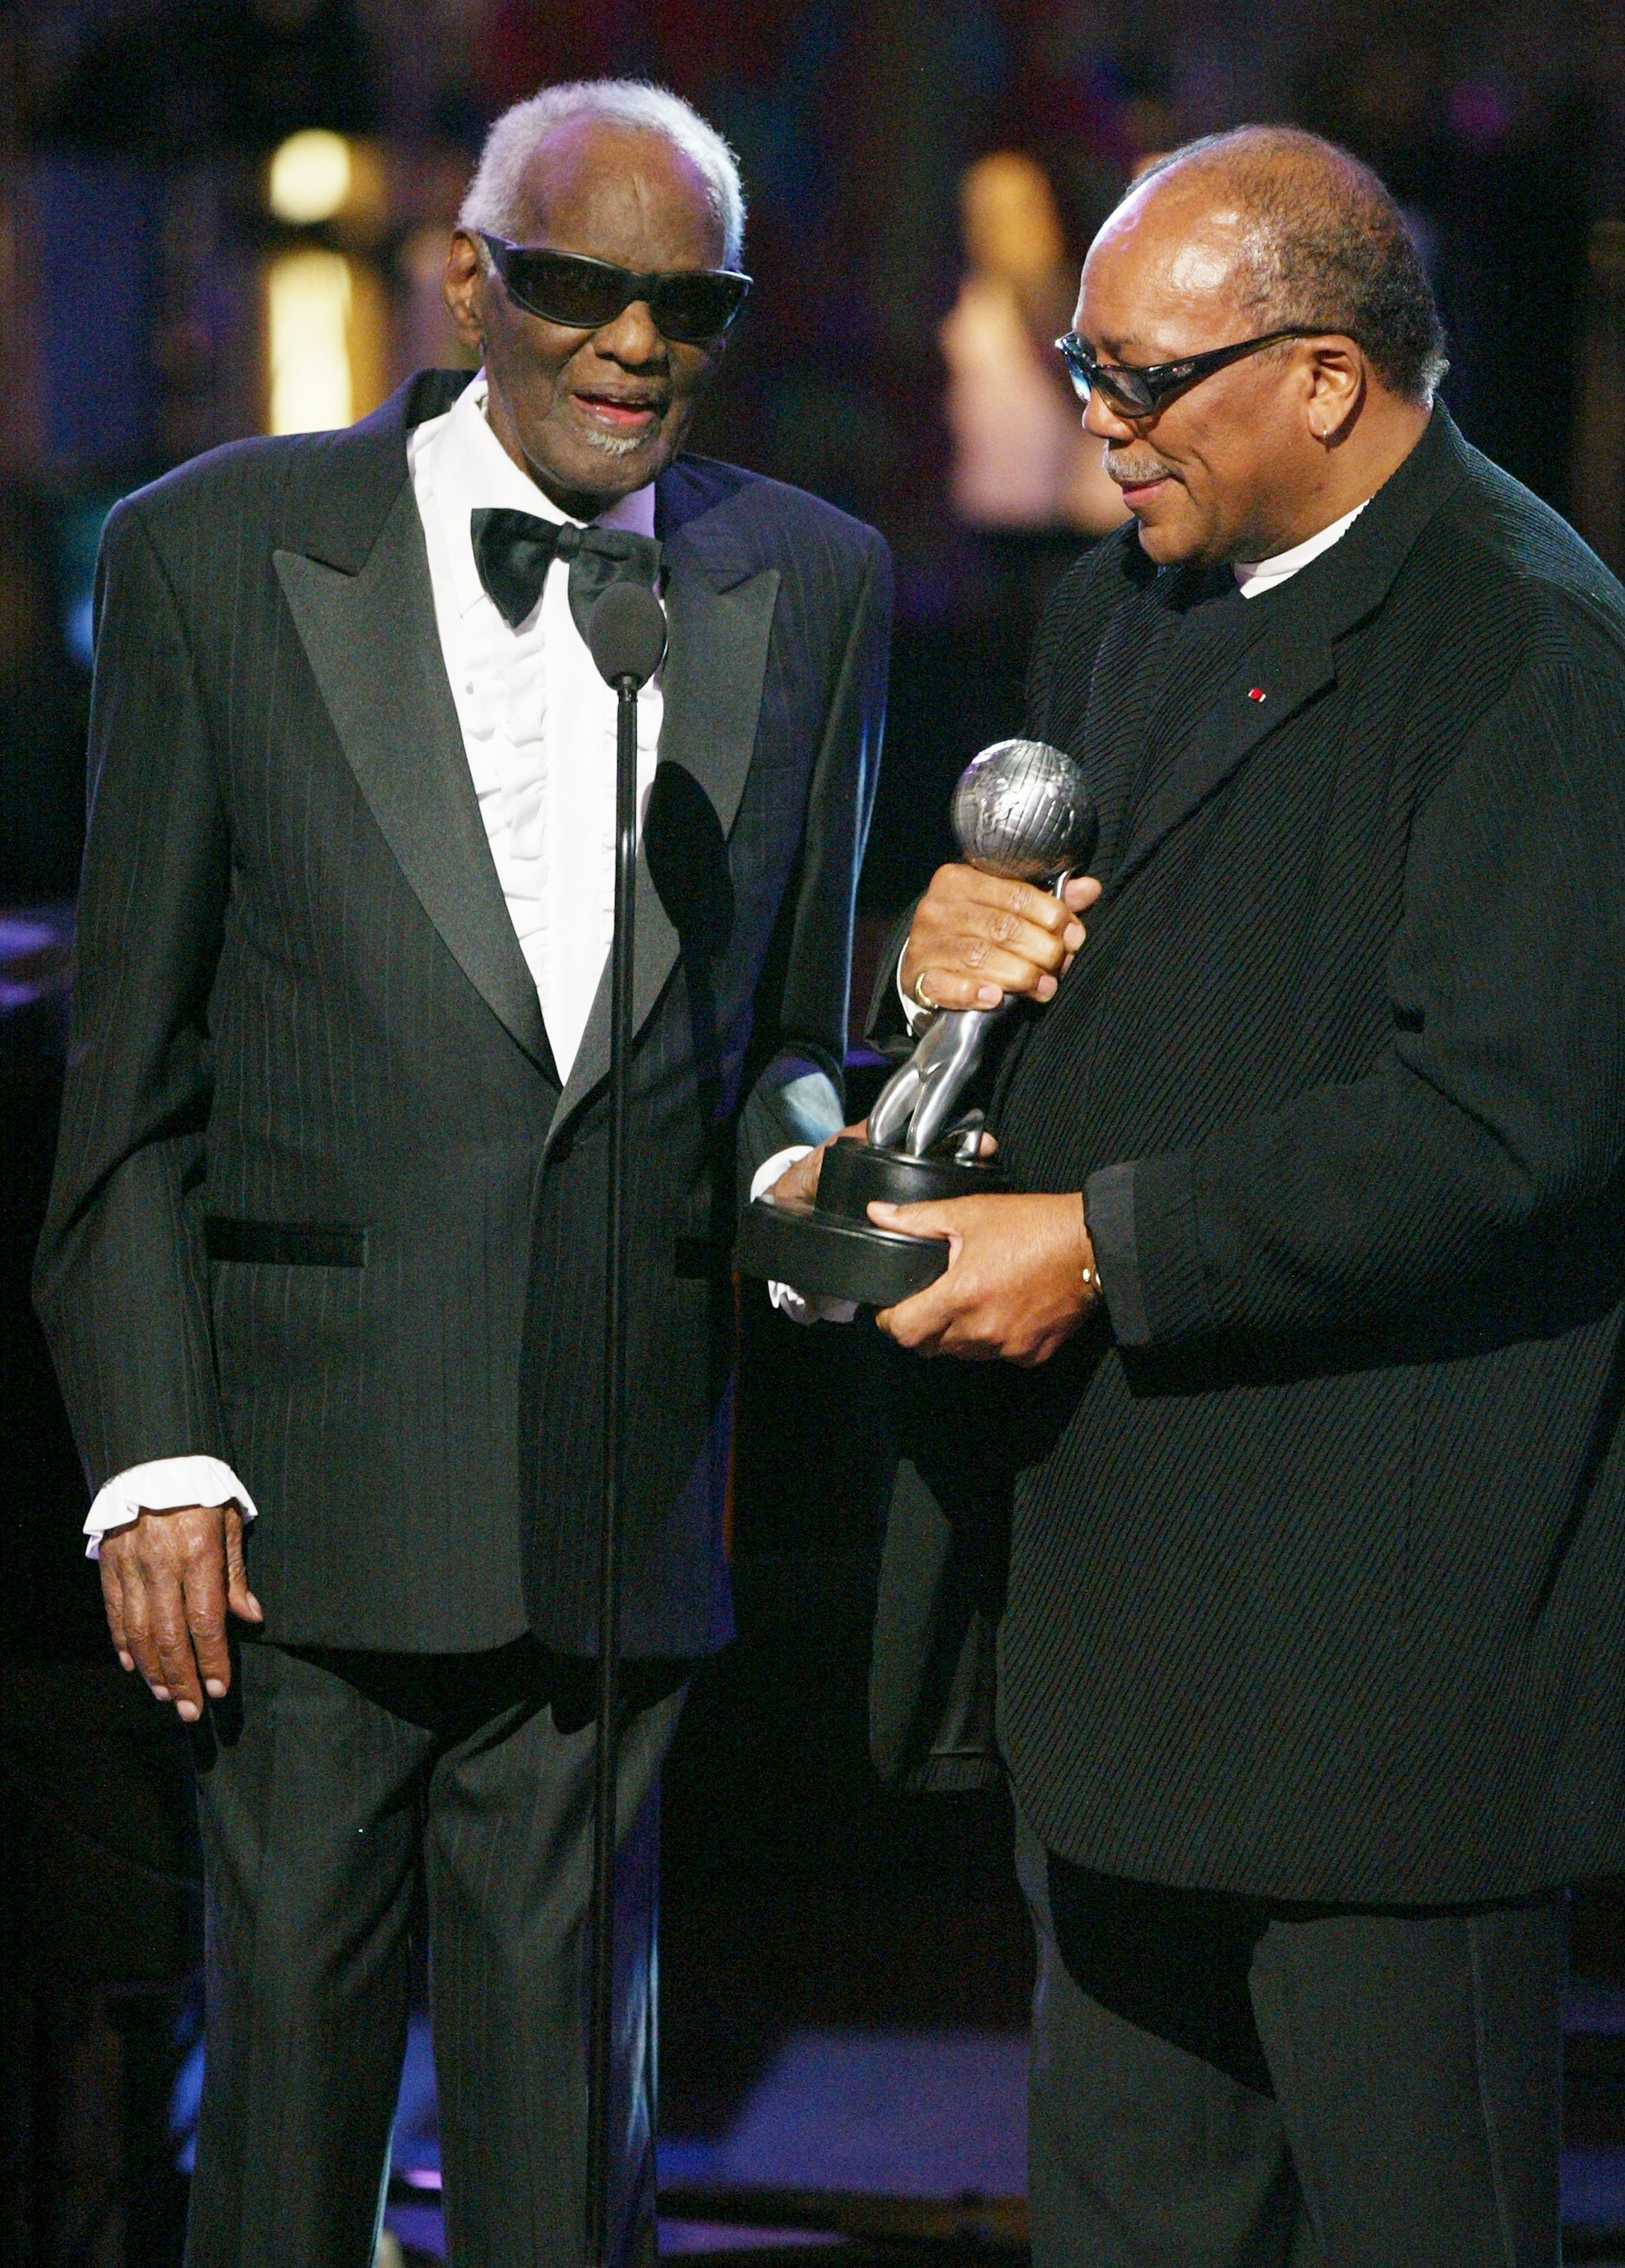 Ray Charles and Quincy Jones at the 35th Annual NAACP Image Awards. March 6, 2004. | Photo: GettyImages